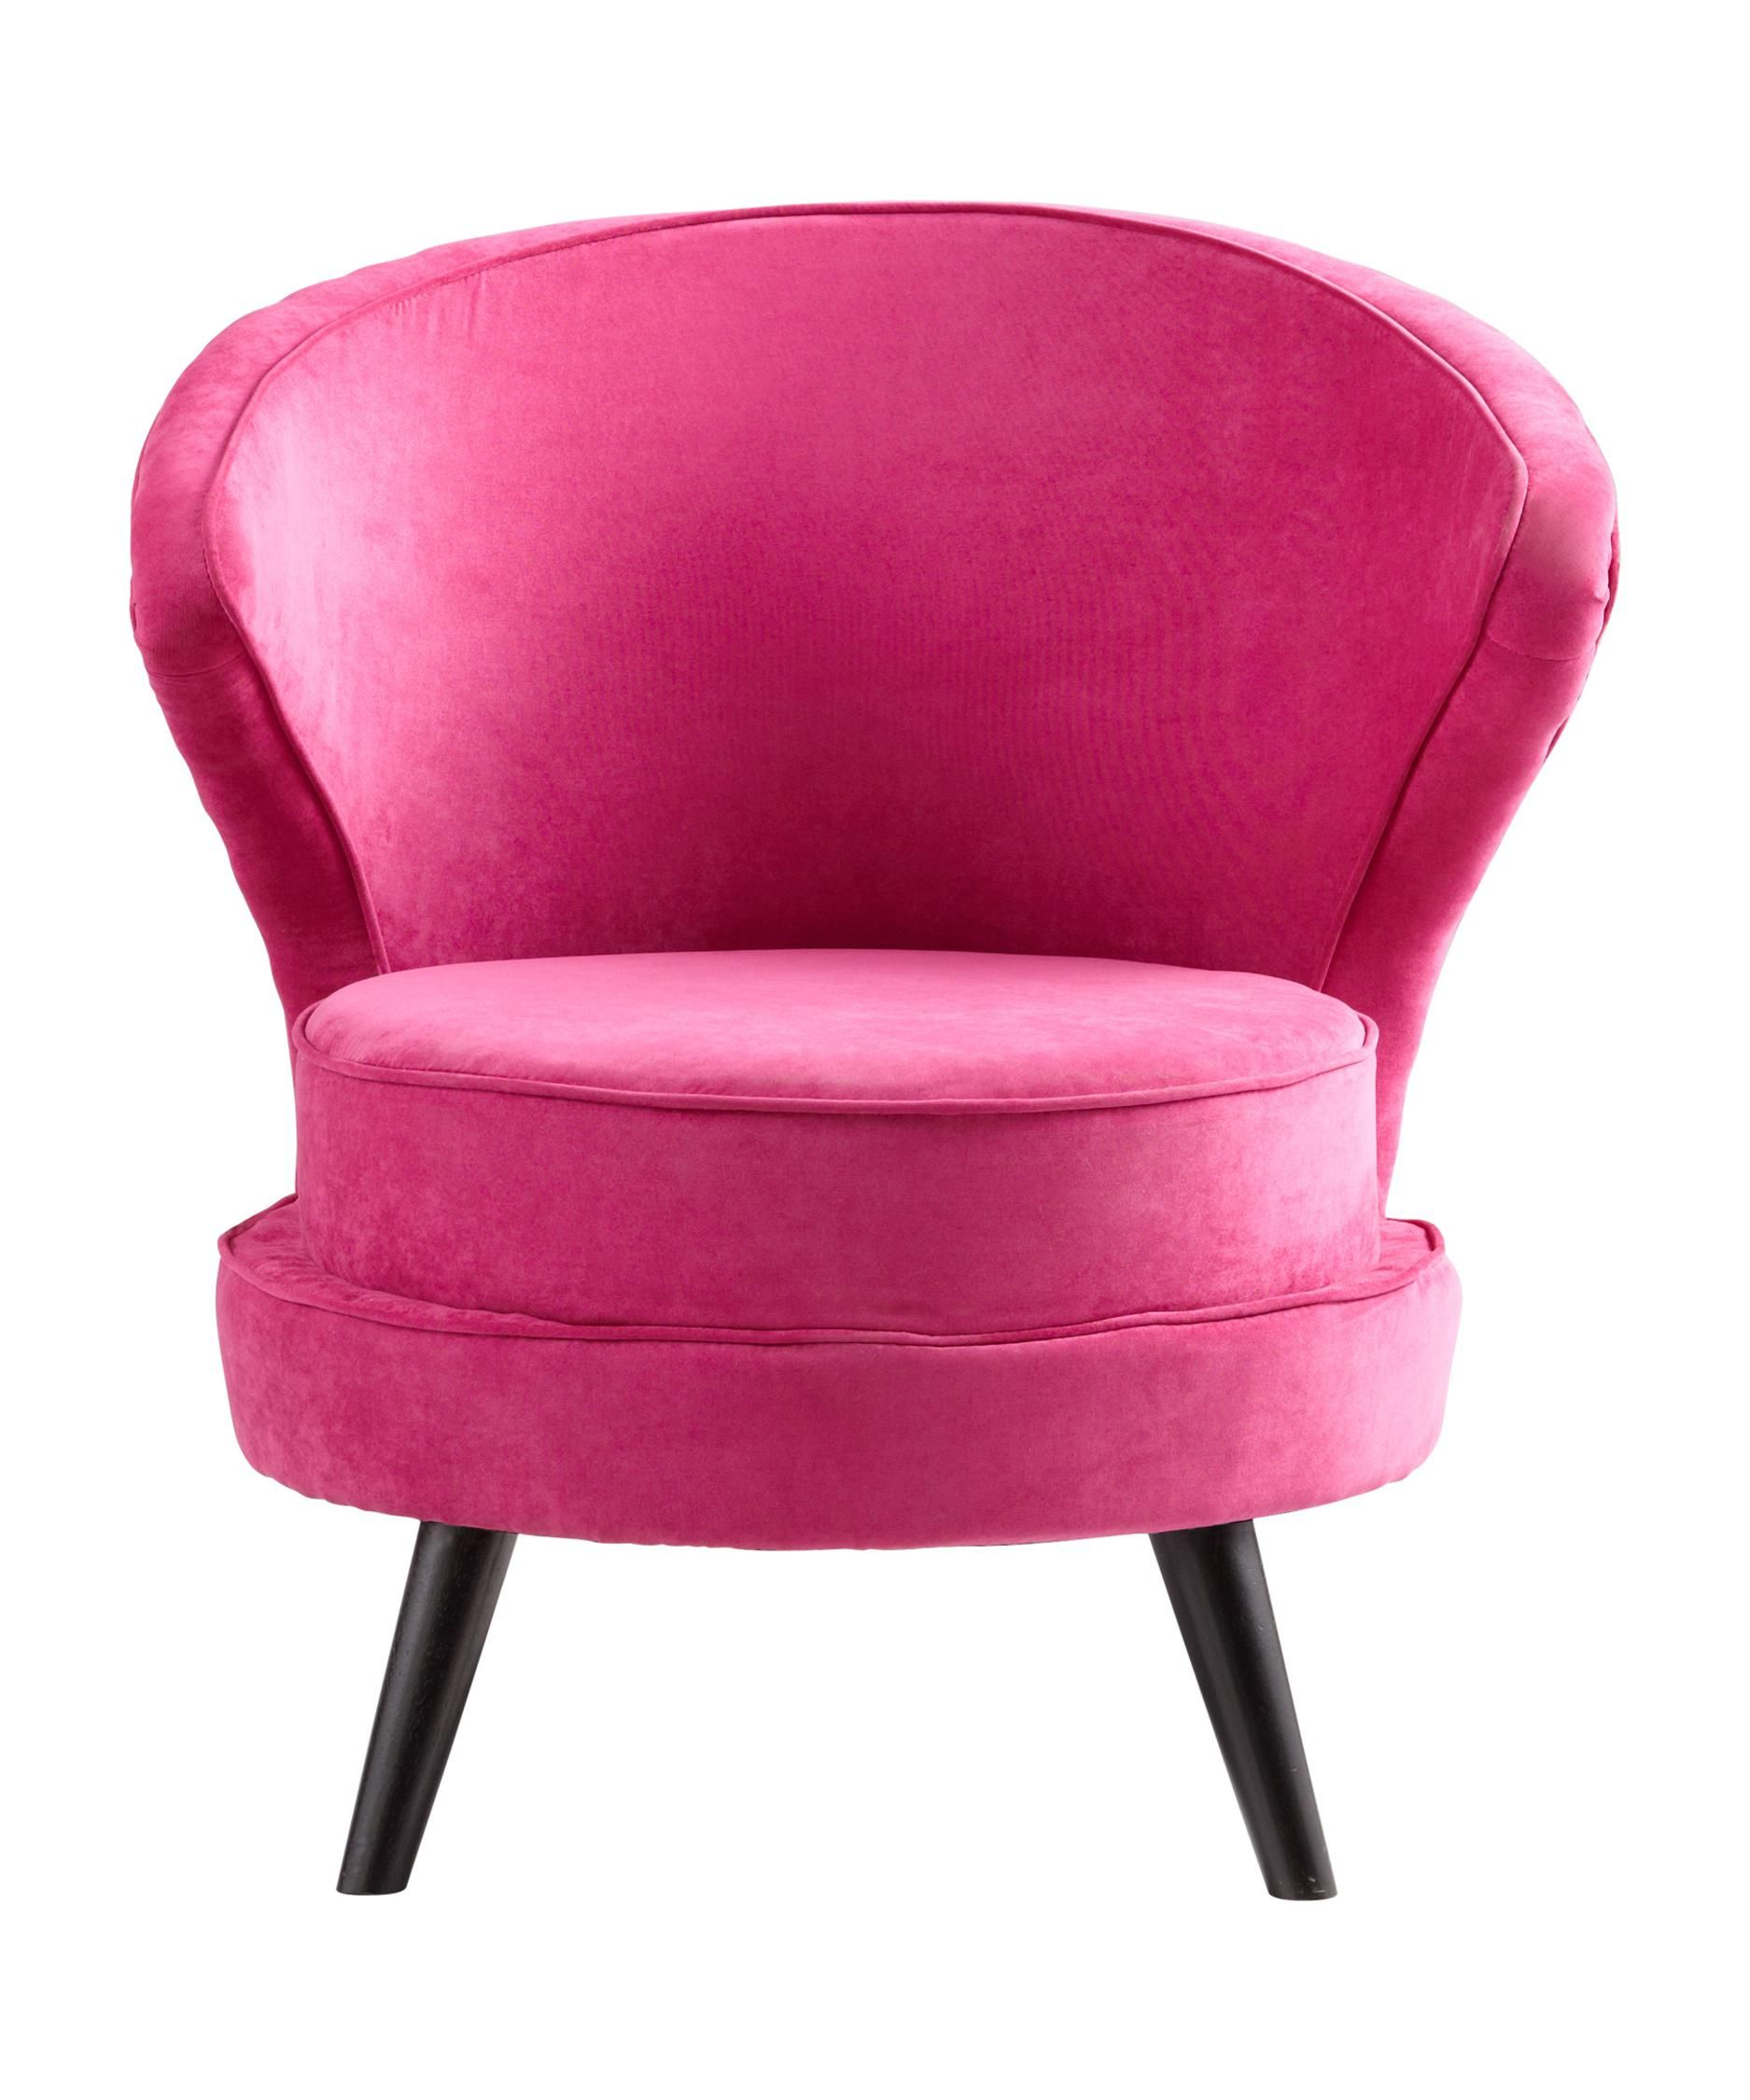 Exceptionnel Cyan Design Miss I Candy Occasional Chair | Capitol Lighting  1 800lighting.com